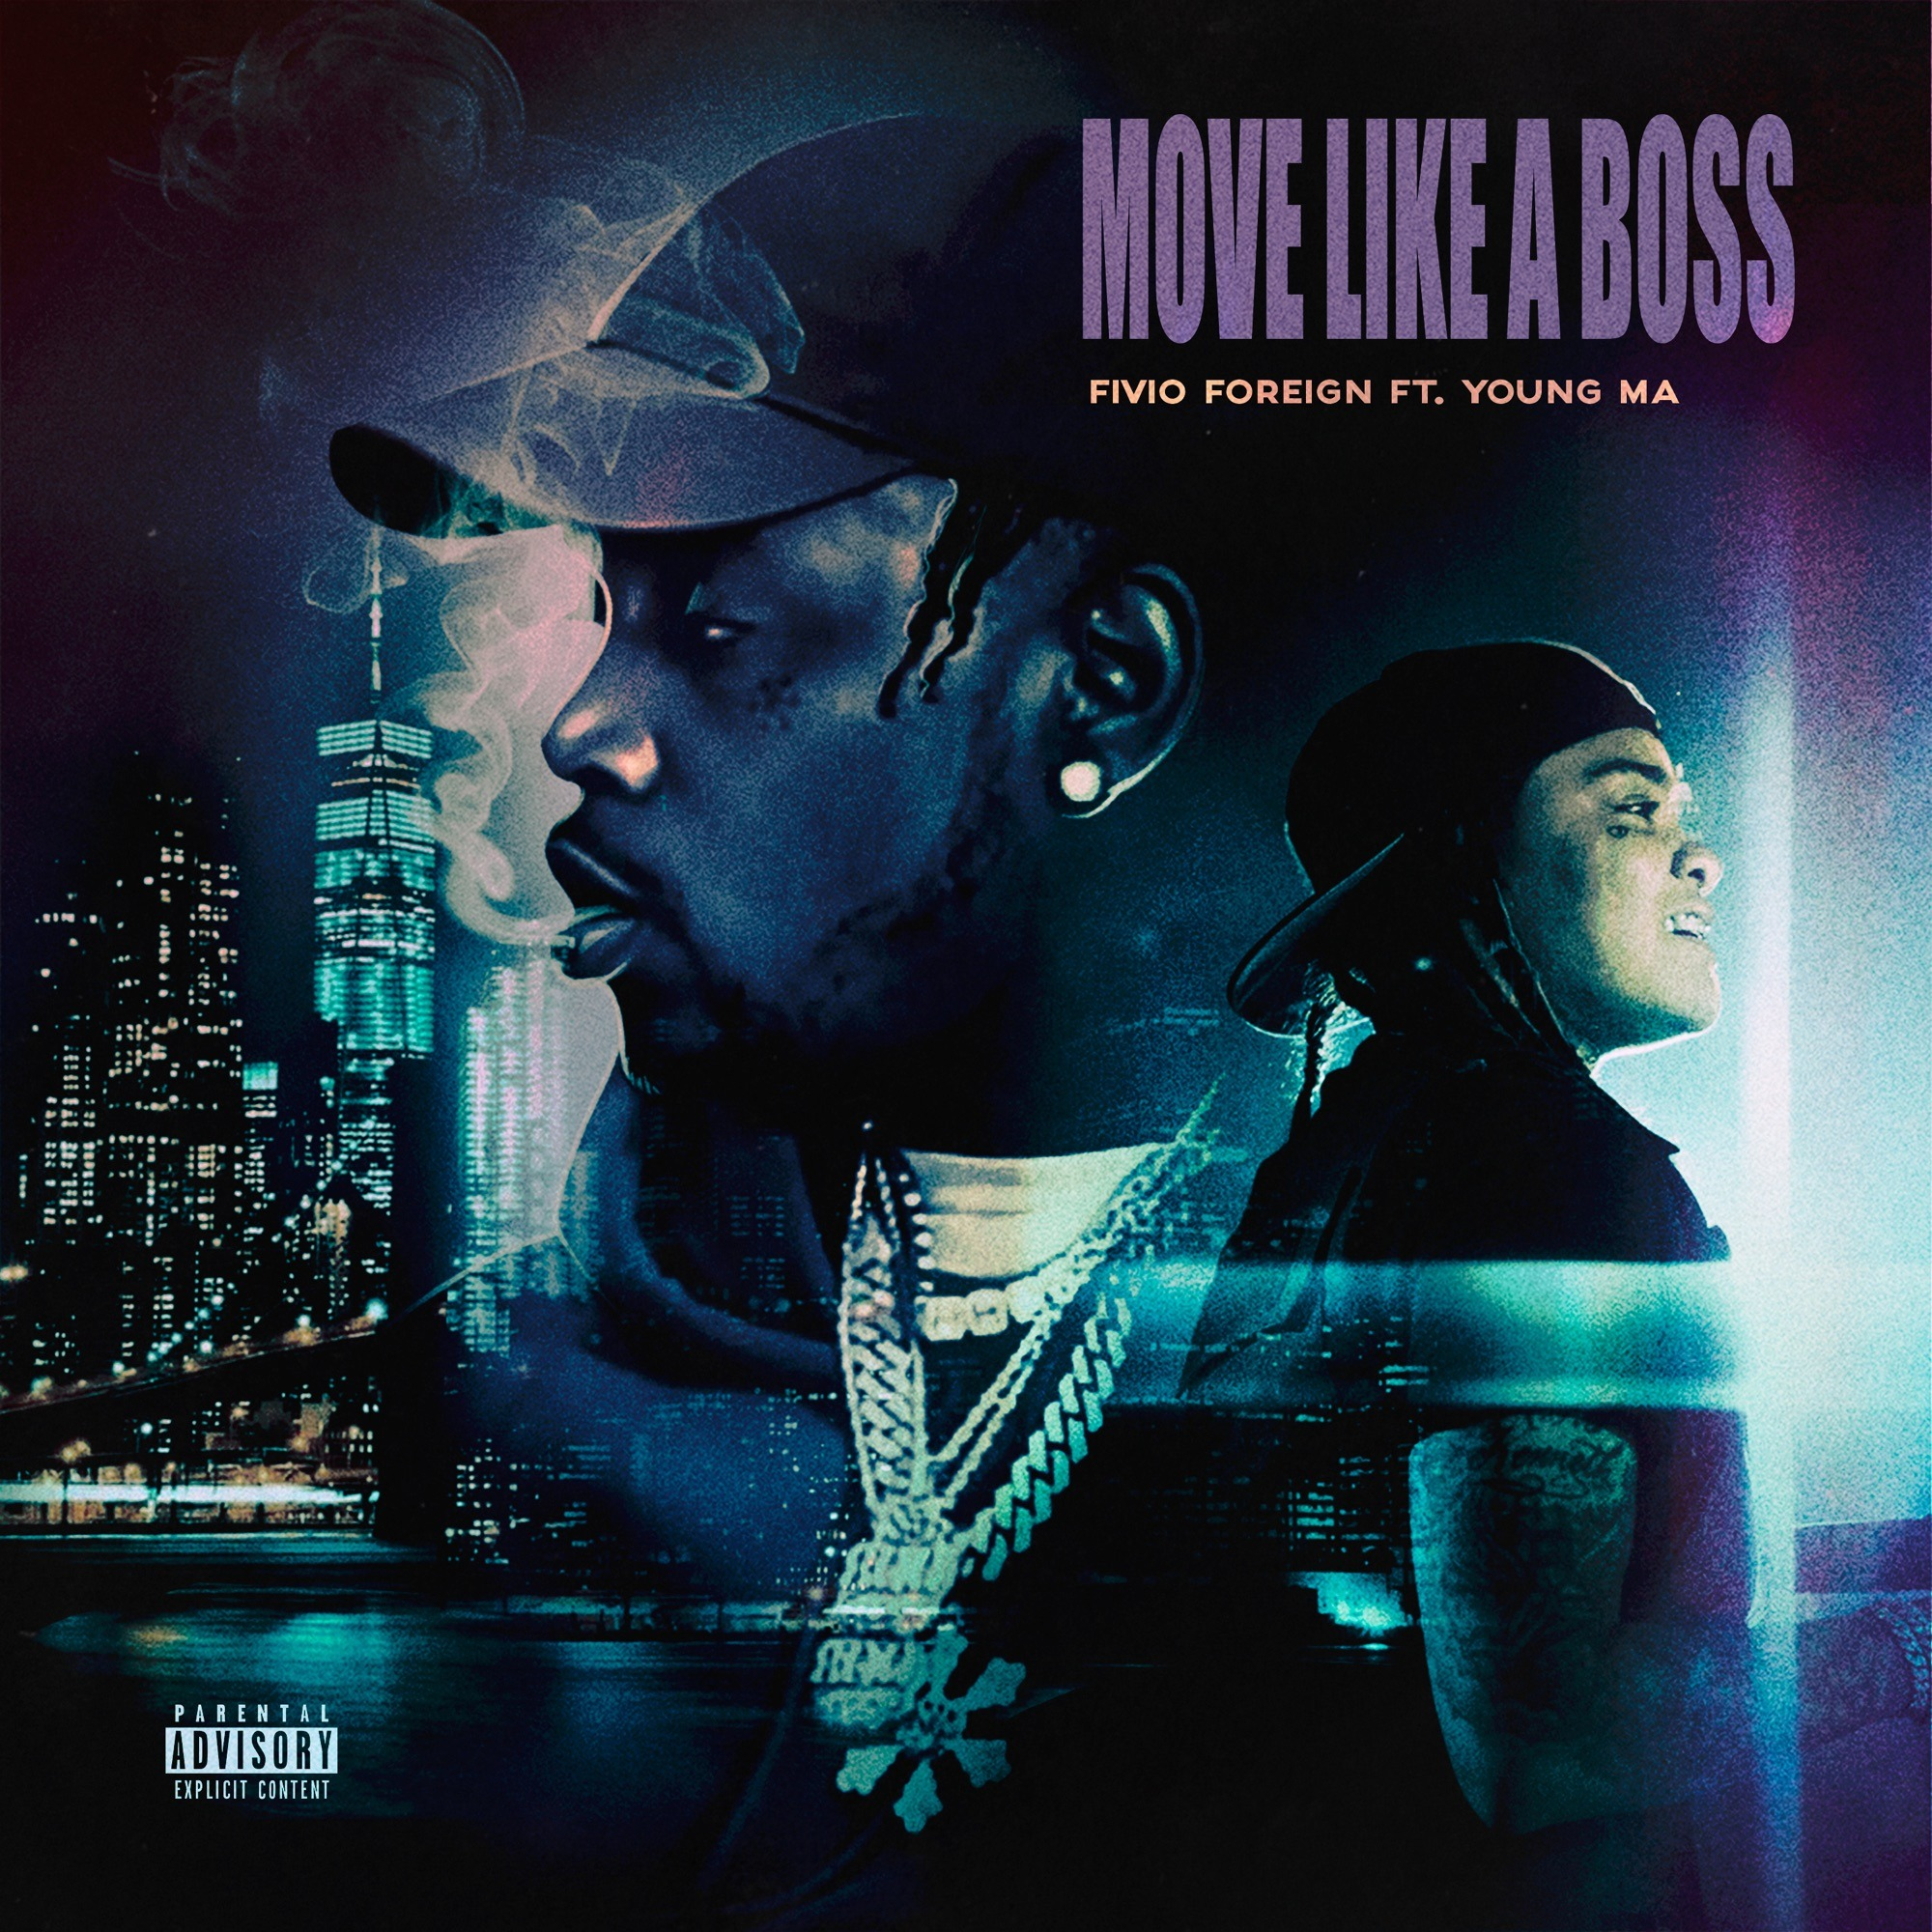 Fivio Foreign feat. Young M.A - Move Like a Boss